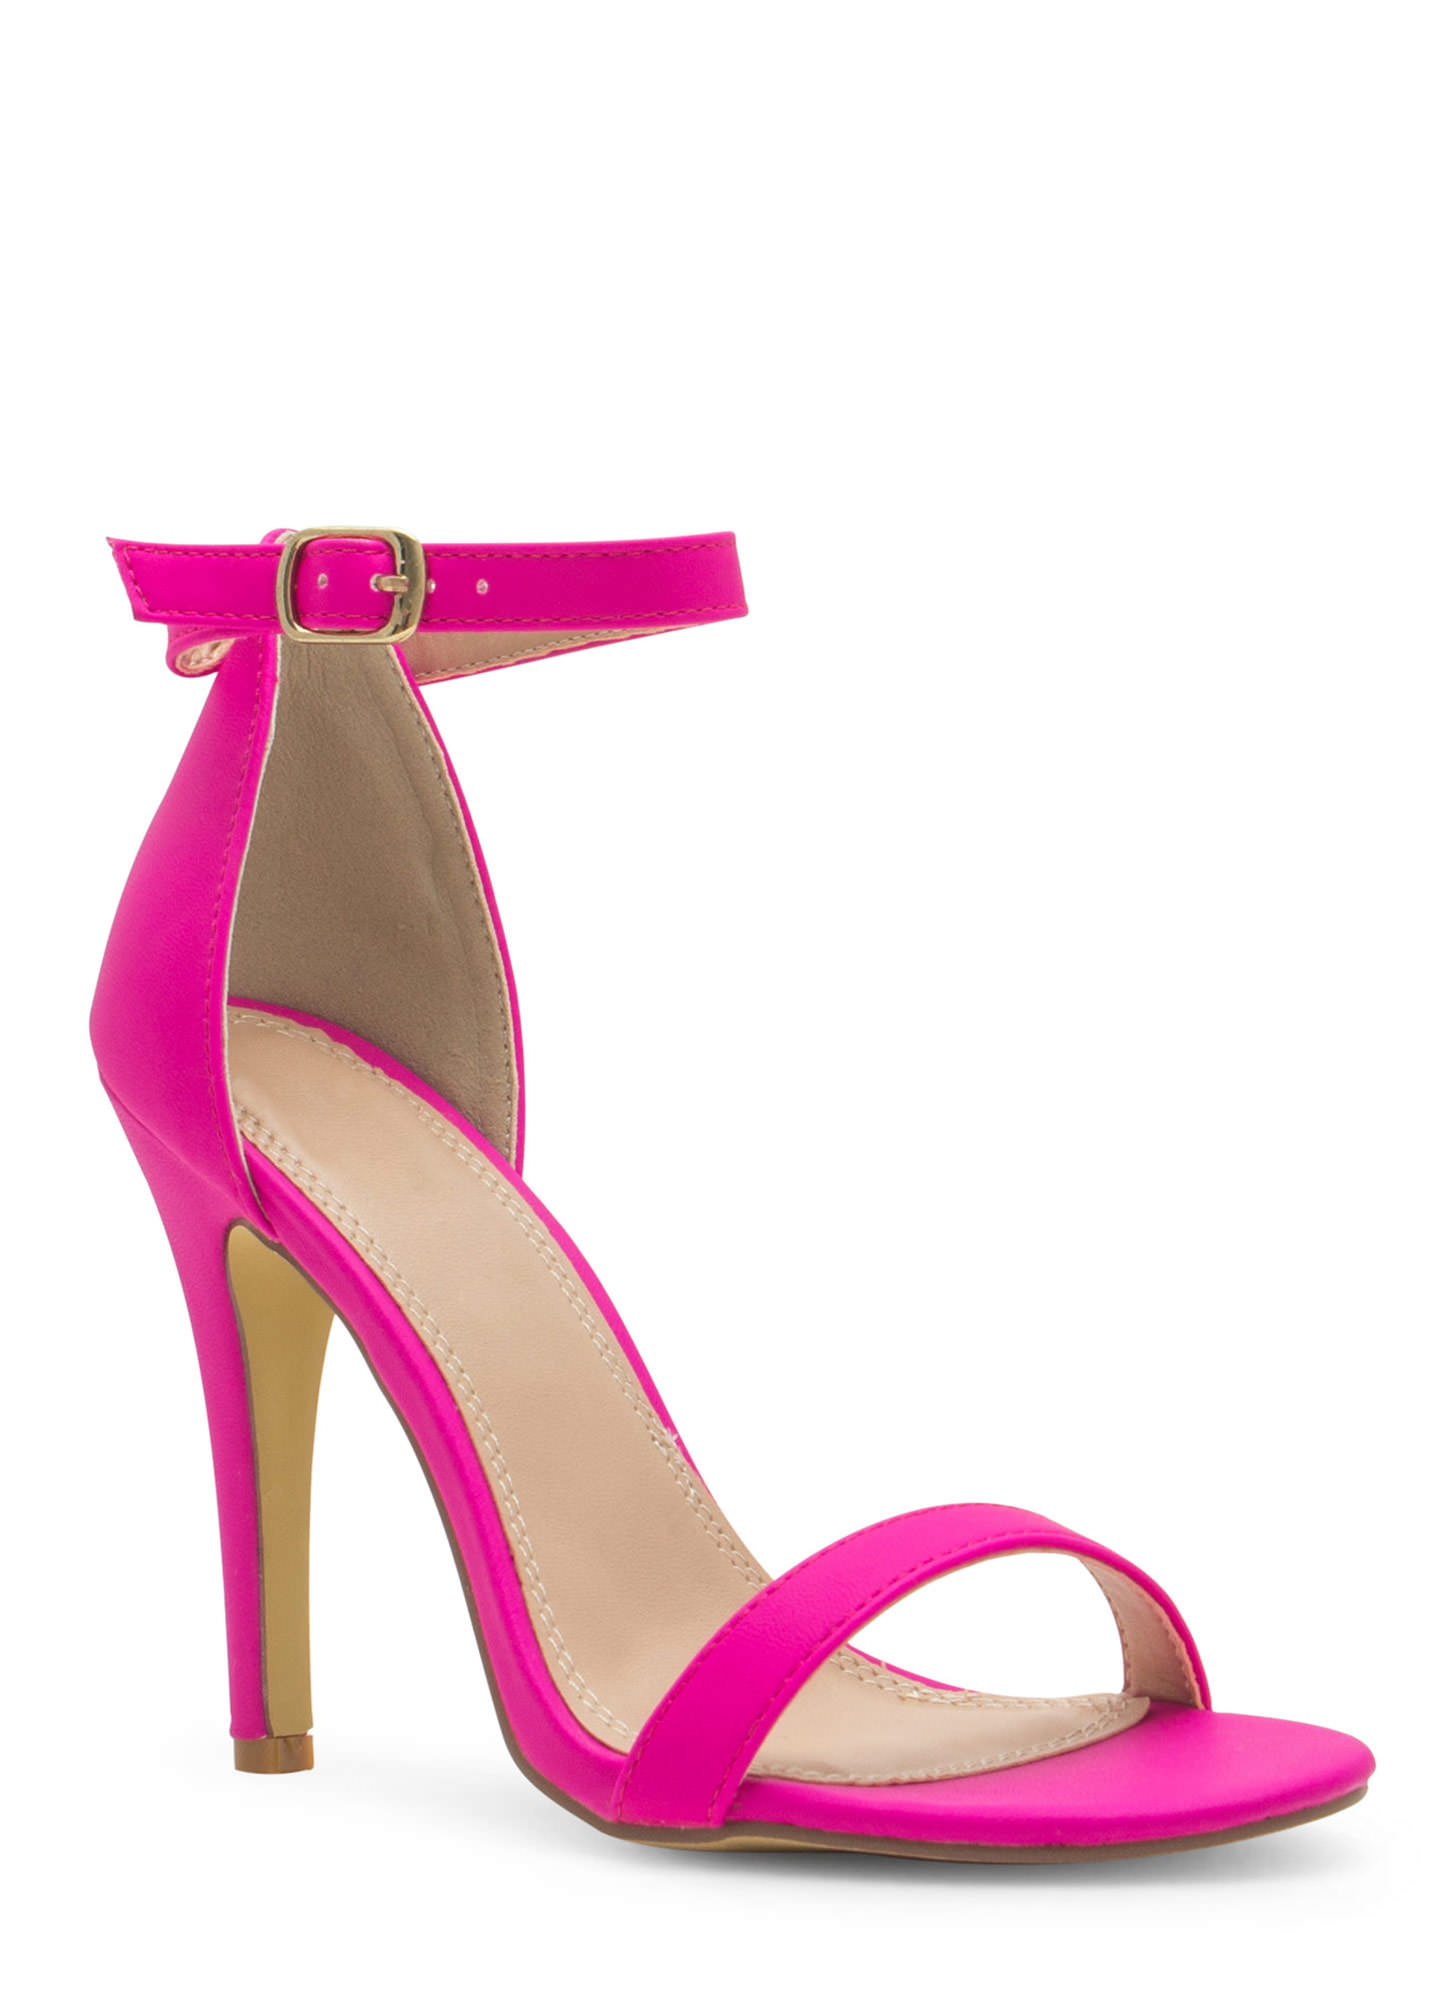 Less Is More Single-Strap Heels HOTPINK